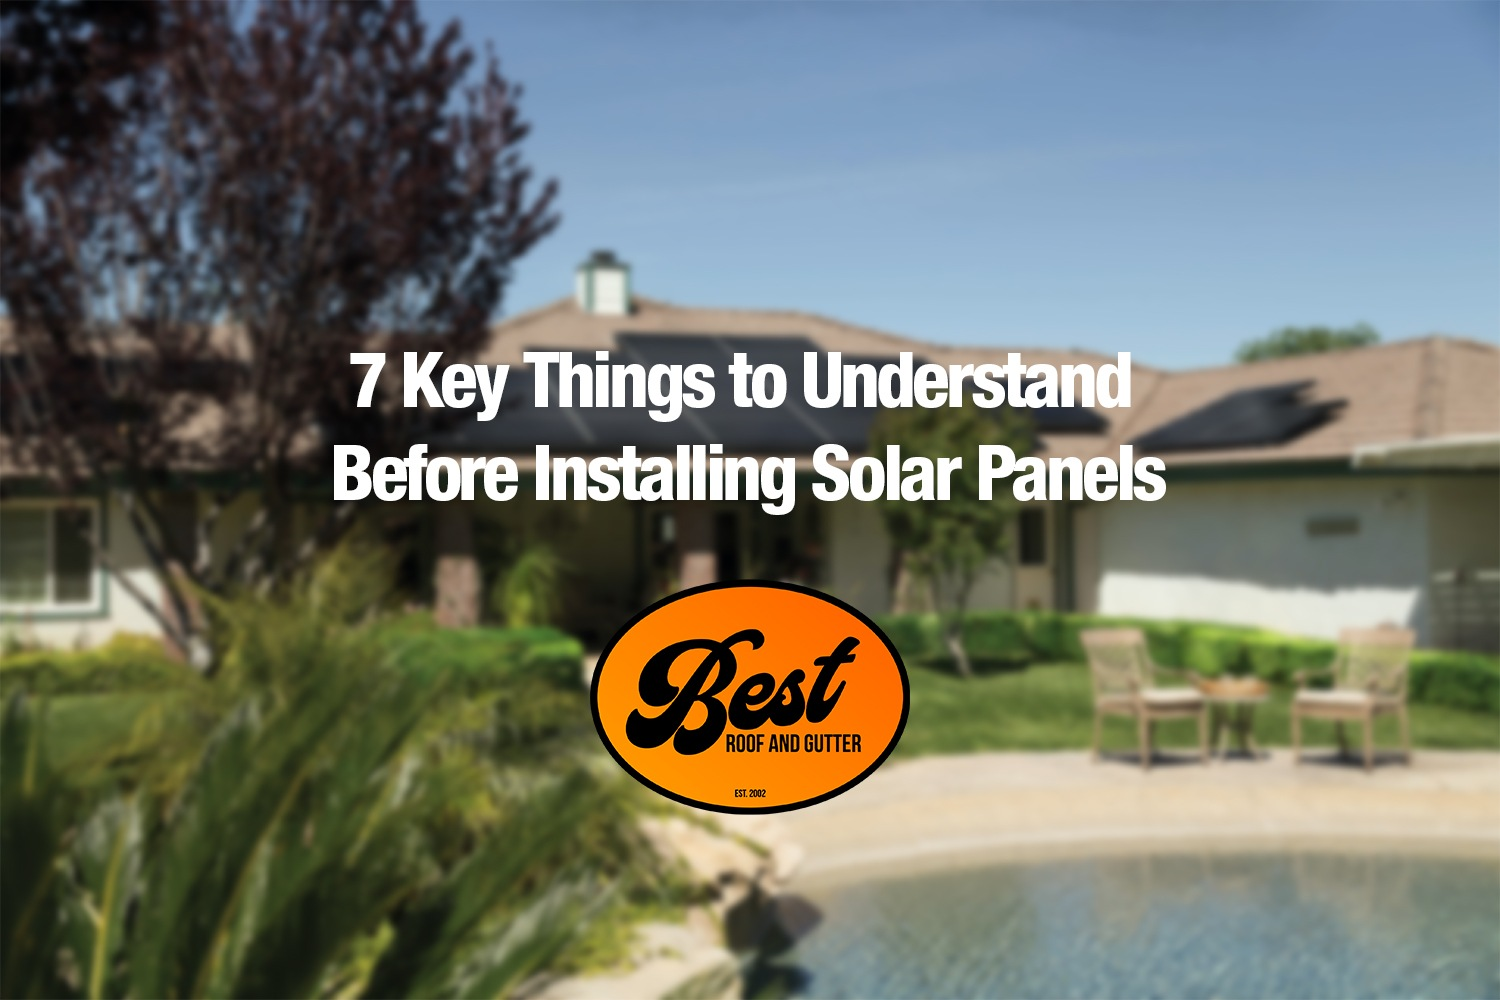 7 Key Things to understand Before Installing Solar Panels